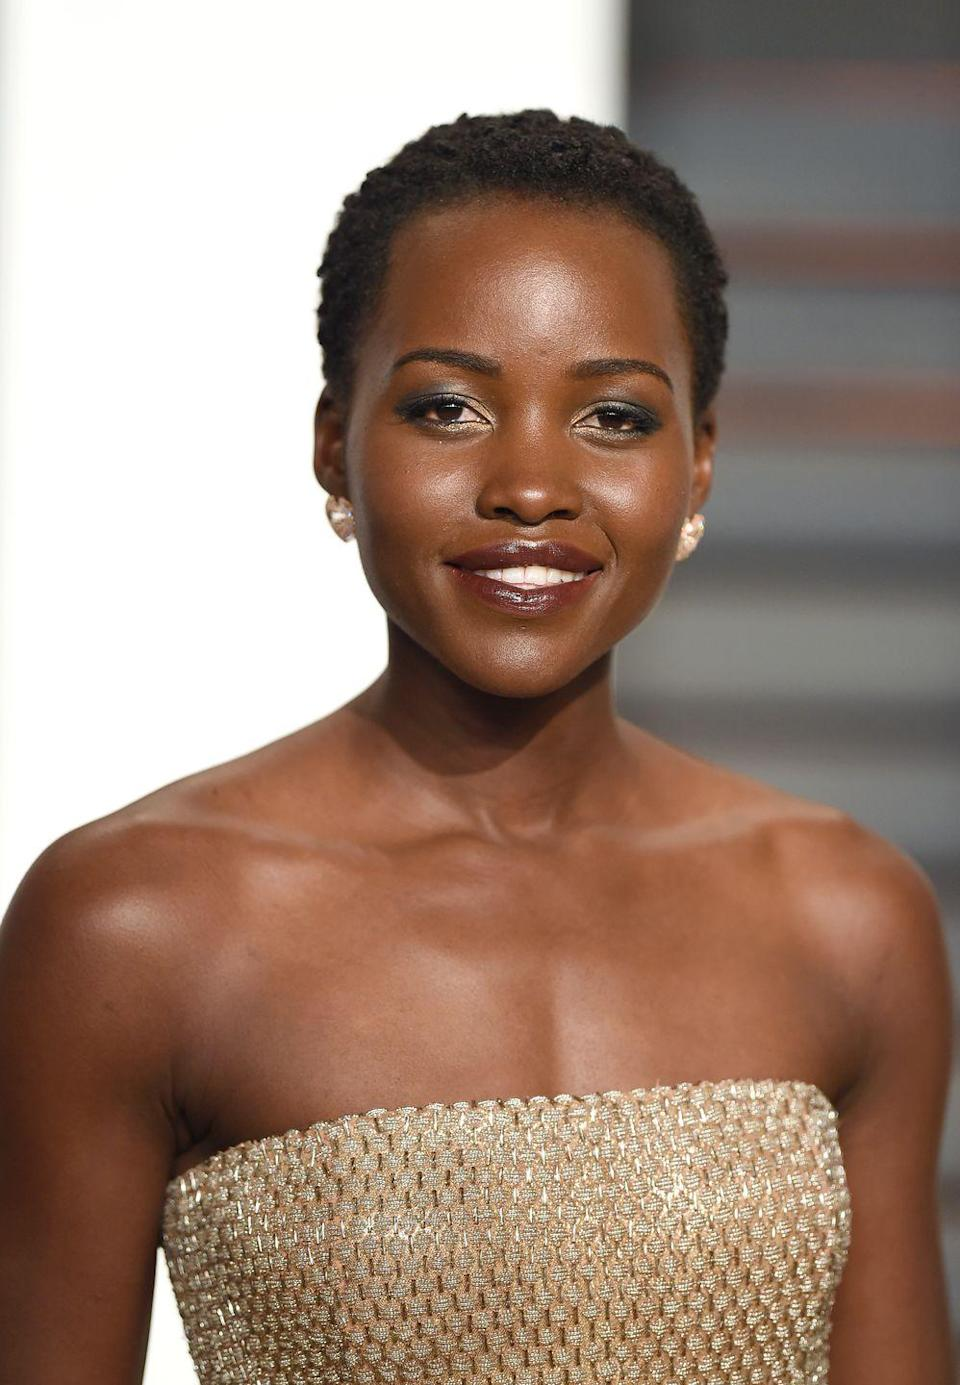 """<p>Actress <strong>Lupita Nyong'o</strong> is always switching up her natural hairstyles. This close-cropped look can be achieved by twisting your curls in groups of strands and setting the style overnight with a silk scarf. Lightly fluff the next morning and voilà. </p><p><a class=""""link rapid-noclick-resp"""" href=""""https://www.amazon.com/Lightweight-Sleeping-Turquoise-Camellia-Pattern/dp/B00ICESTJK/ref=sr_1_1_s_it?tag=syn-yahoo-20&ascsubtag=%5Bartid%7C10055.g.2471%5Bsrc%7Cyahoo-us"""" rel=""""nofollow noopener"""" target=""""_blank"""" data-ylk=""""slk:SHOP SILK SCARVES"""">SHOP SILK SCARVES</a></p>"""